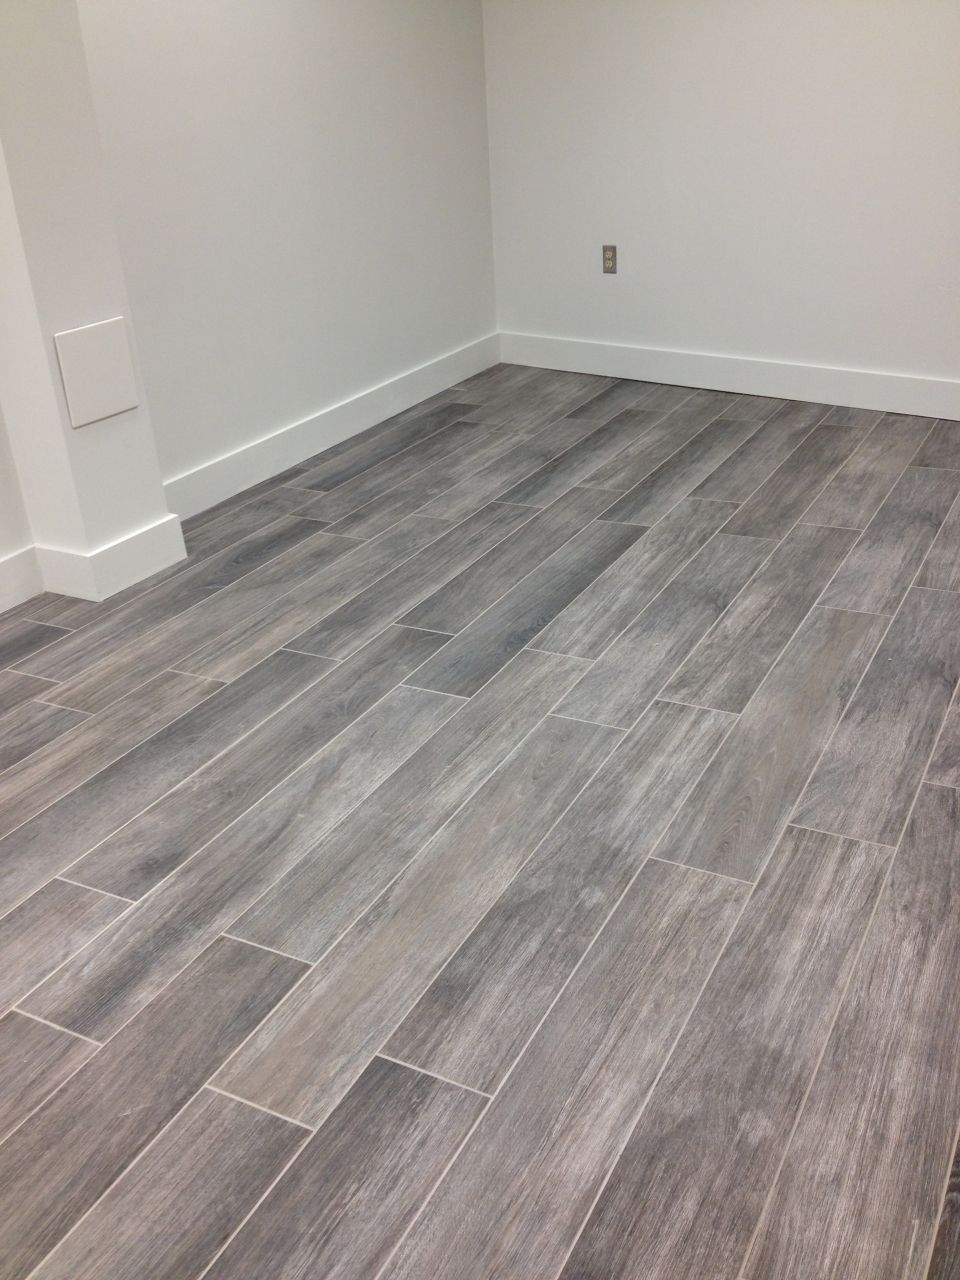 Gray Wood Tile Floor No3lcd6n8 Homes In 2018 Pinterest